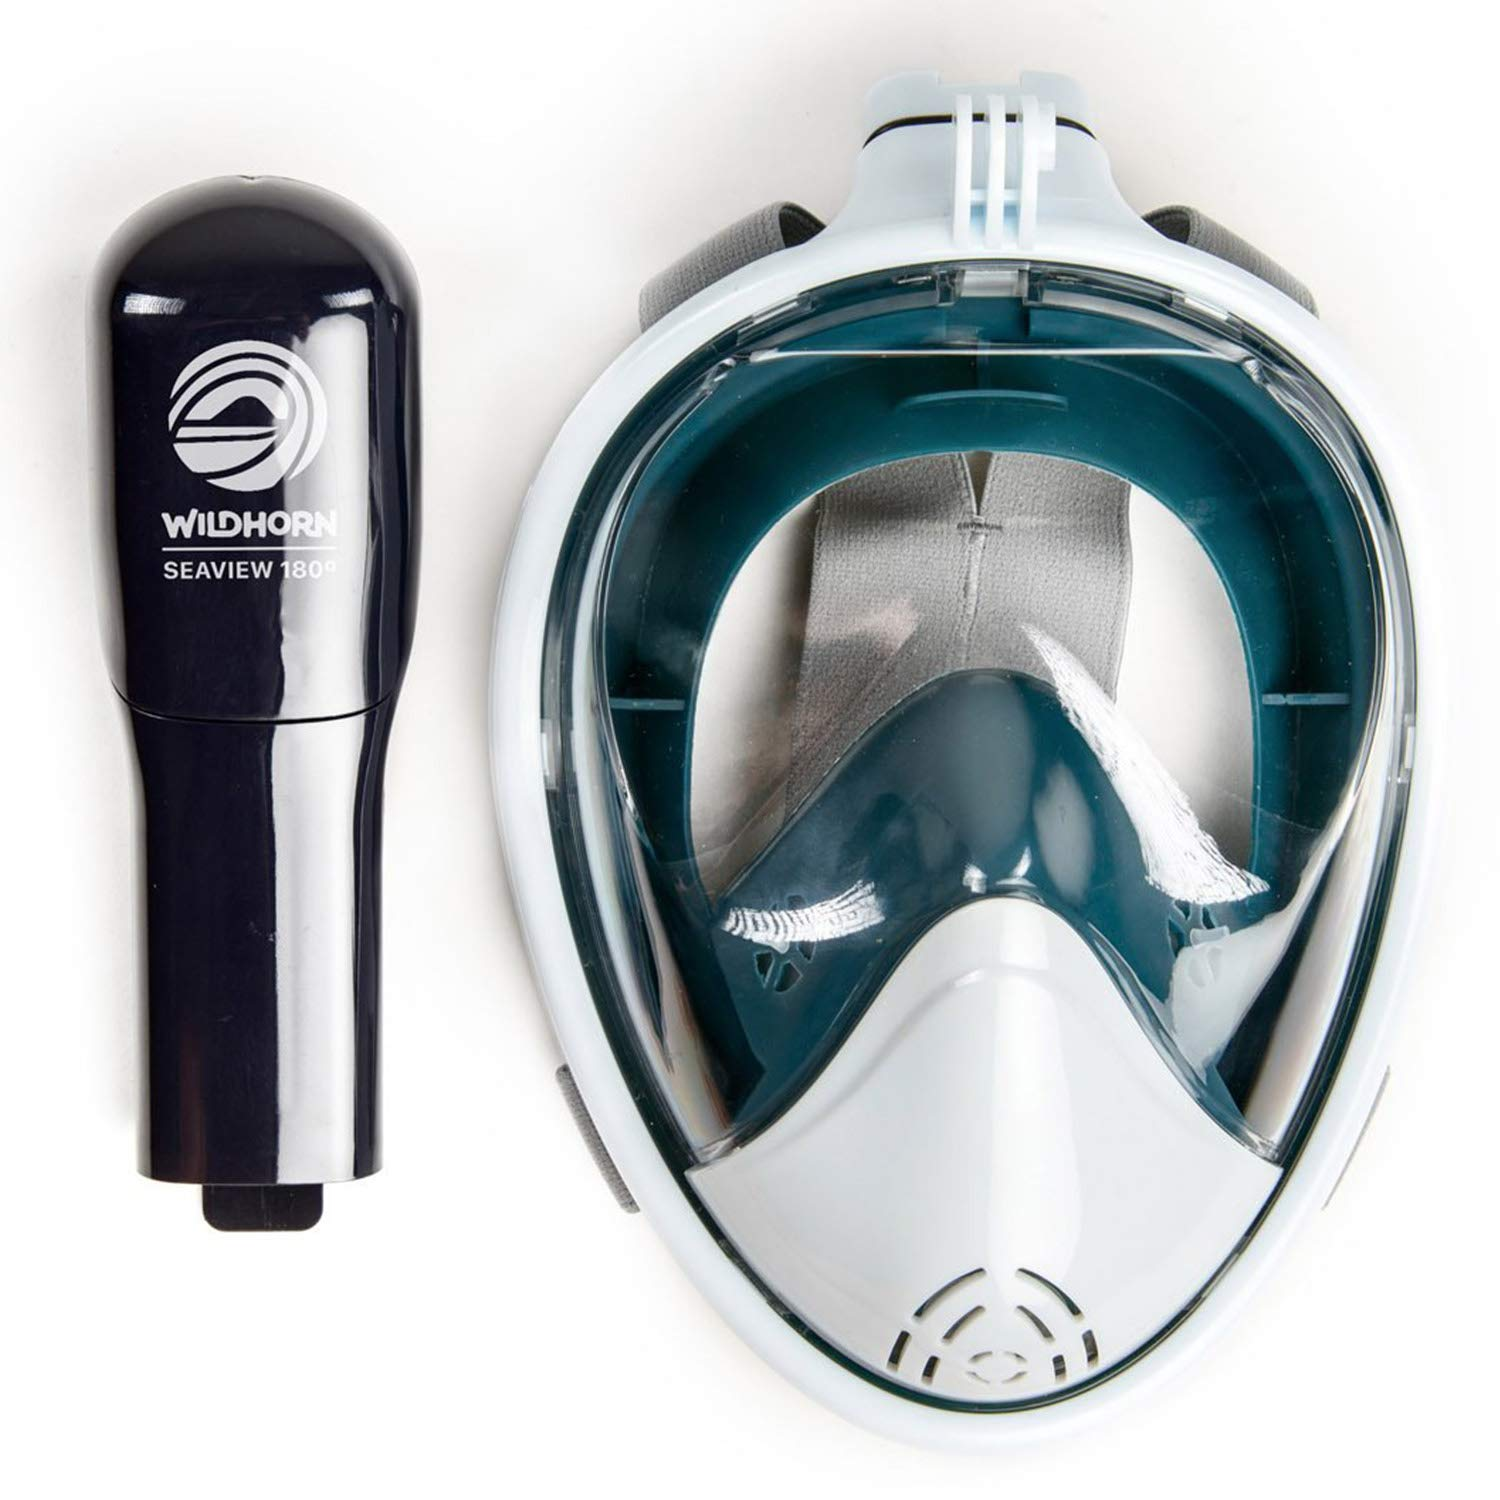 Seaview 180 Degree Panoramic Snorkel Mask- Full Face Design,Panoramic White / Teal,Small/Medium by WildHorn Outfitters (Image #5)